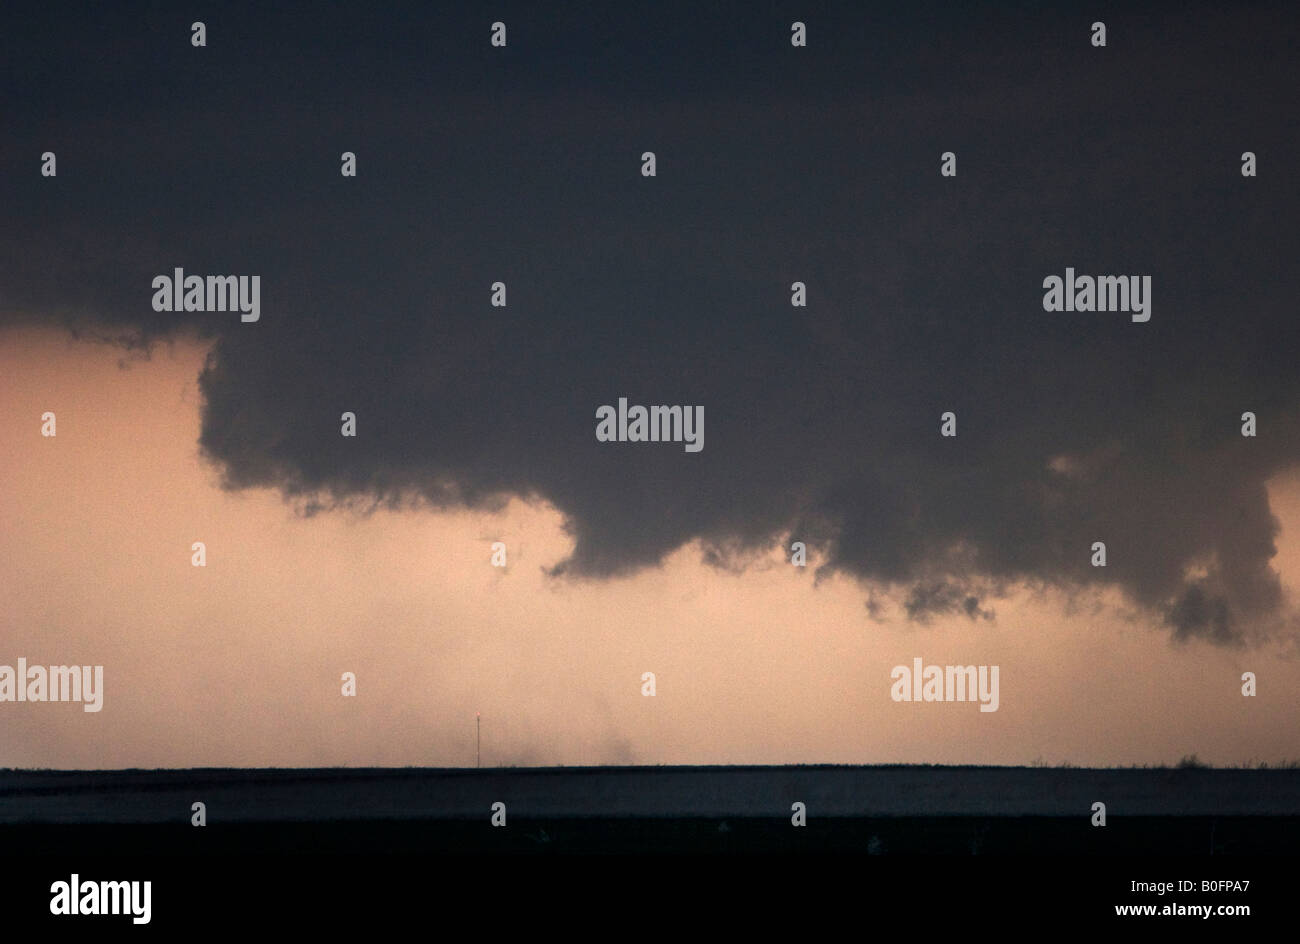 Large wall cloud of a tornado warned supercell thunderstorm in North Central Kansas April 24 2008 - Stock Image